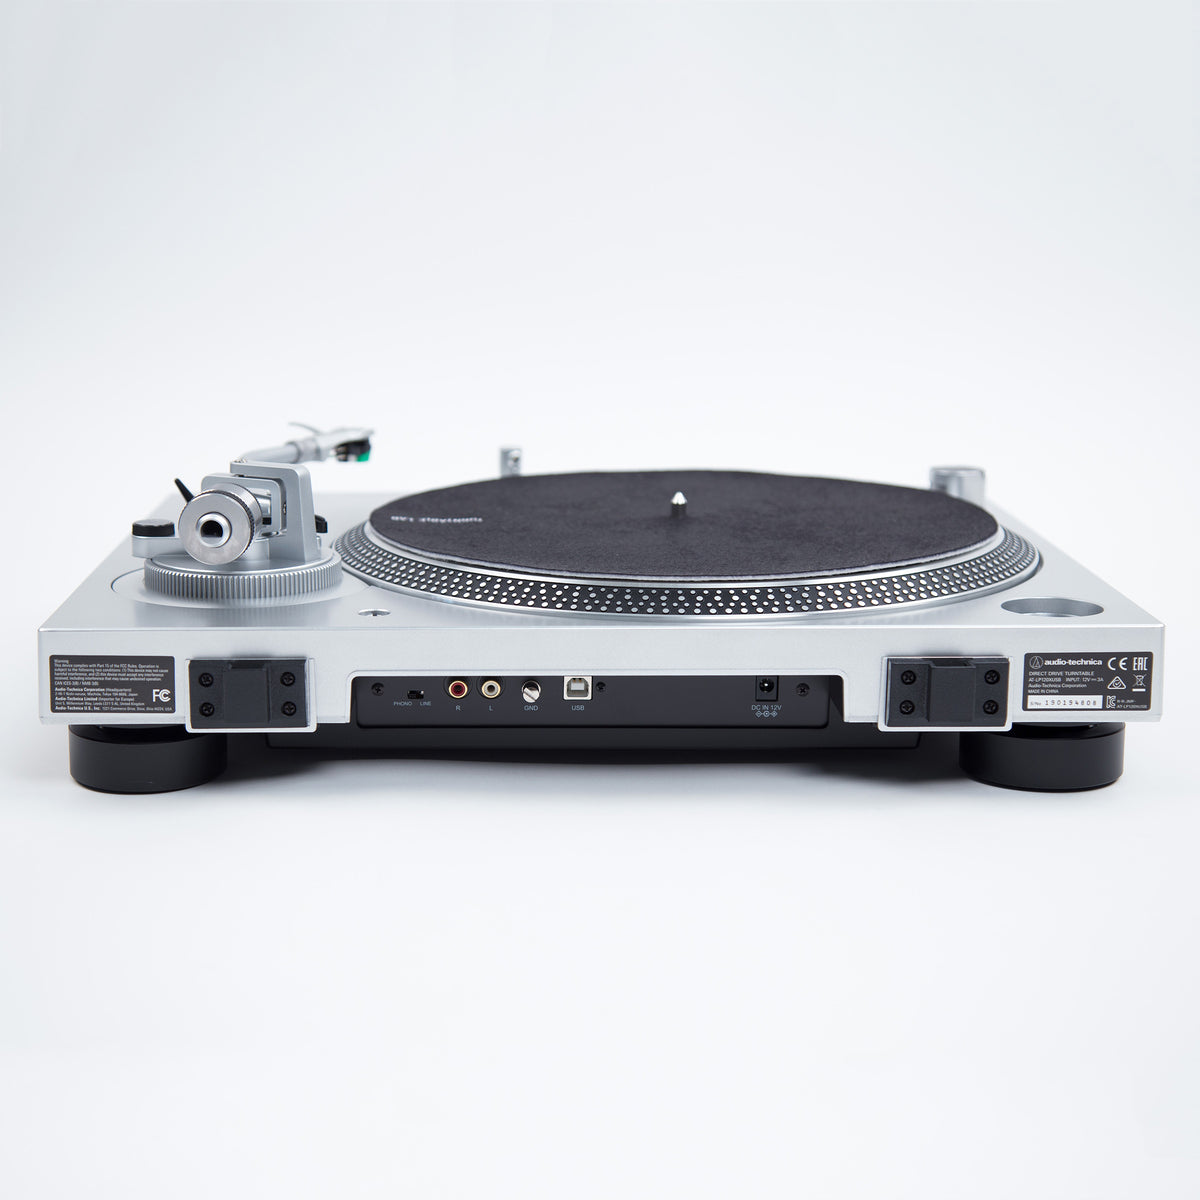 Audio Technica: AT-LP120XUSB-SV Direct Drive USB Turntable - Silver